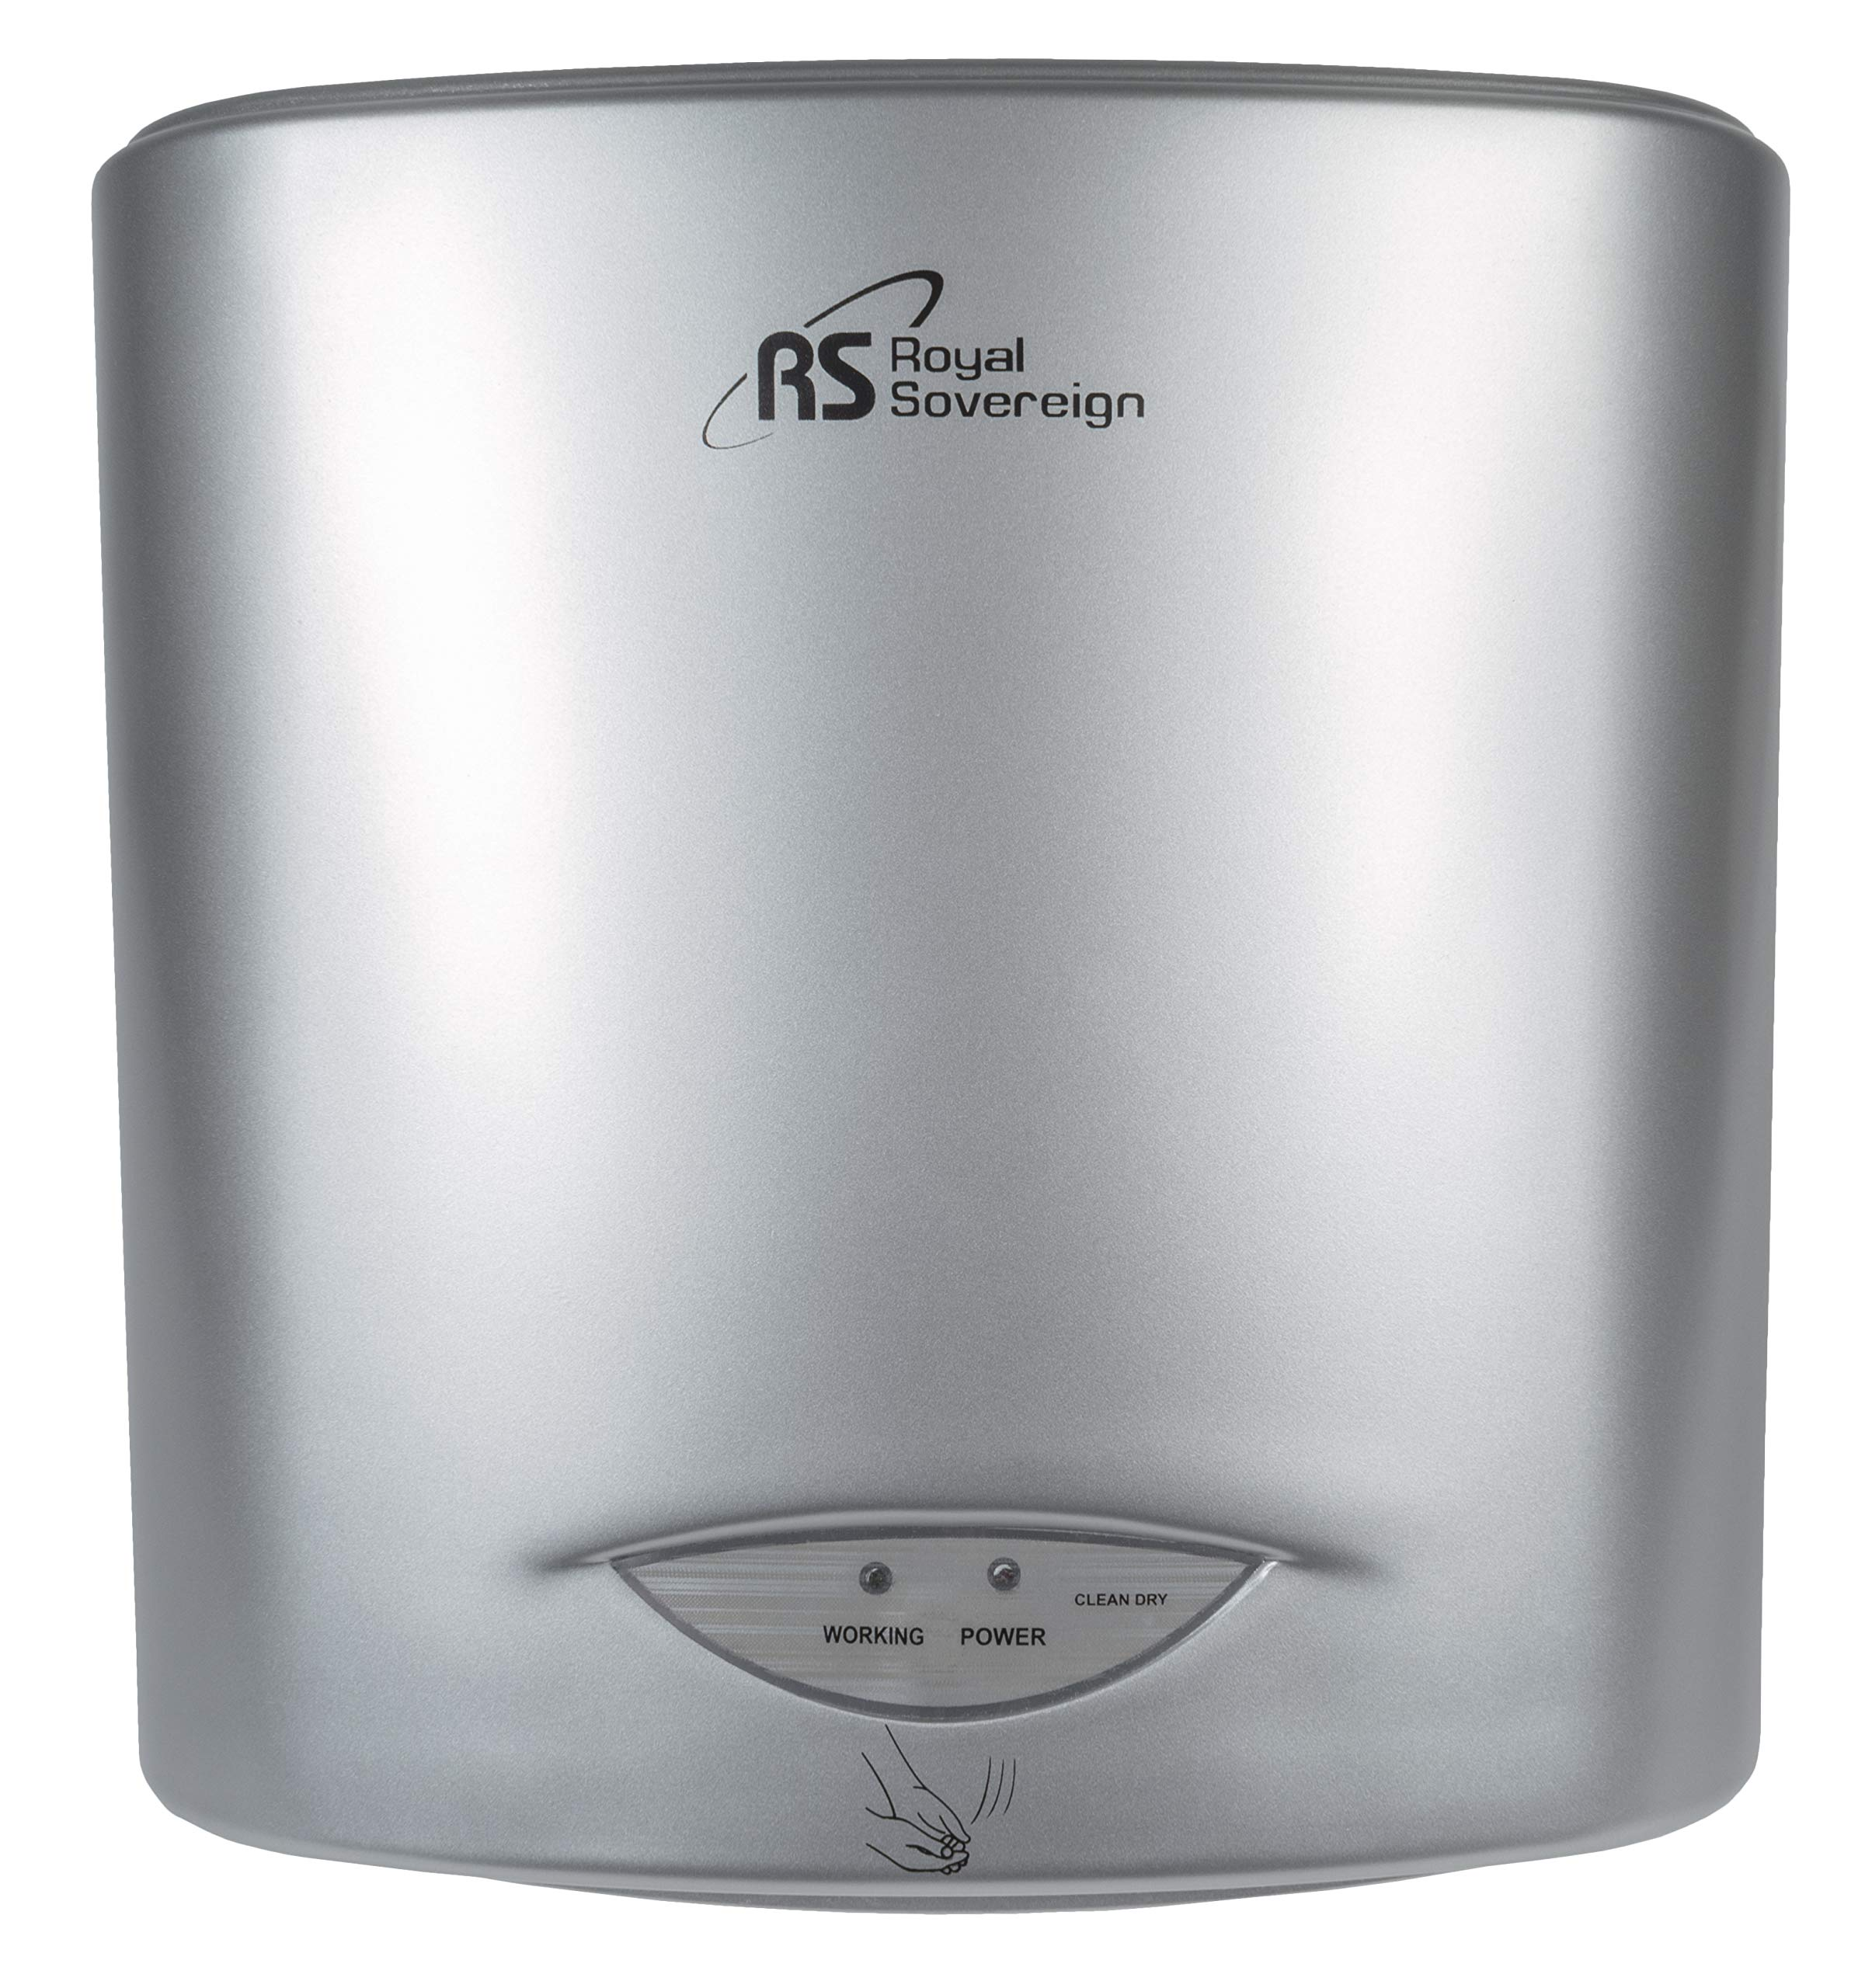 Royal Sovereign 1,200 Watt Touchless Automatic Hand Dryer (RTHD-421S) by Royal Sovereign